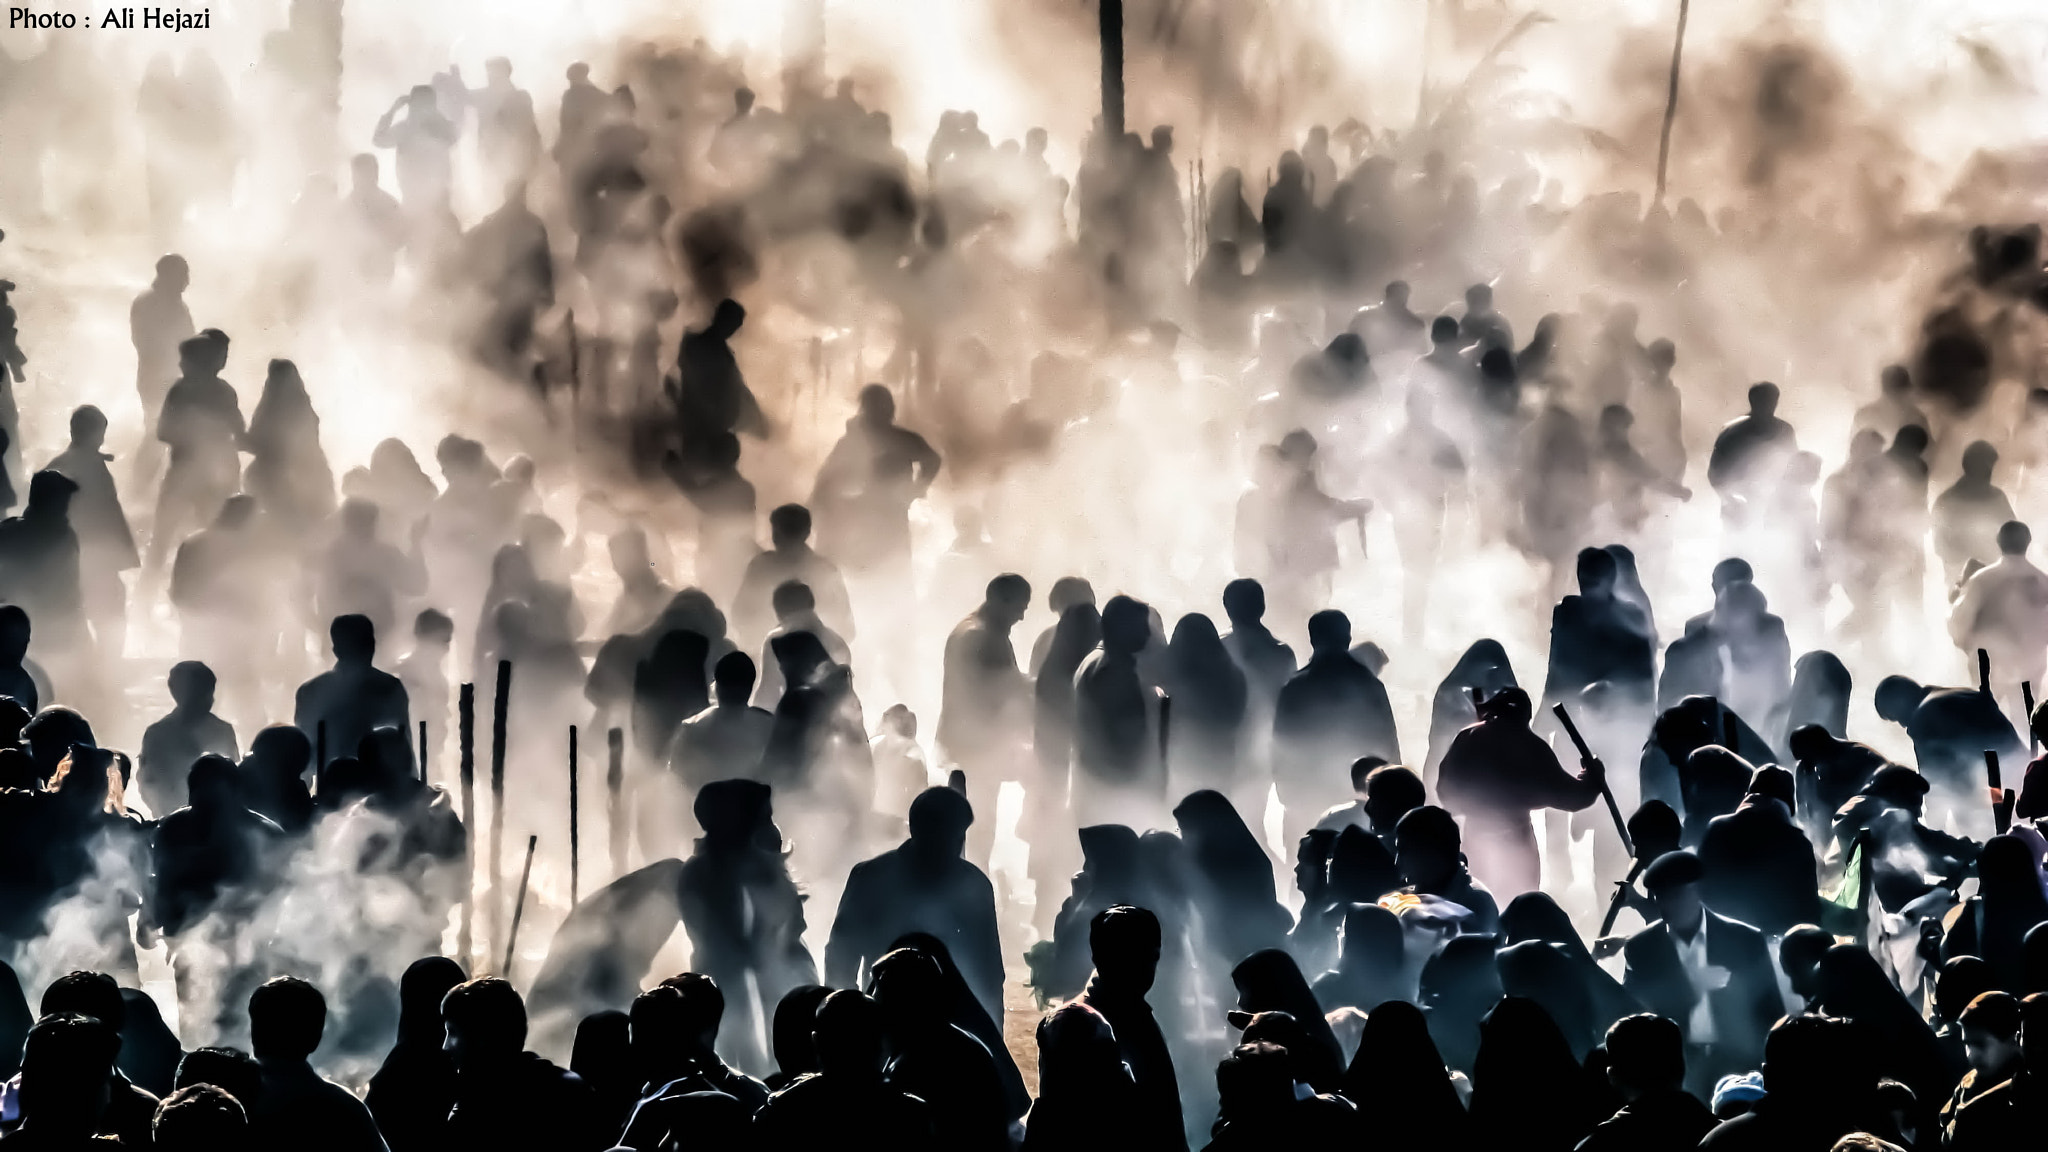 Photograph After the tent burning (Religious Ceremony)2 by Ali Hejazi on 500px